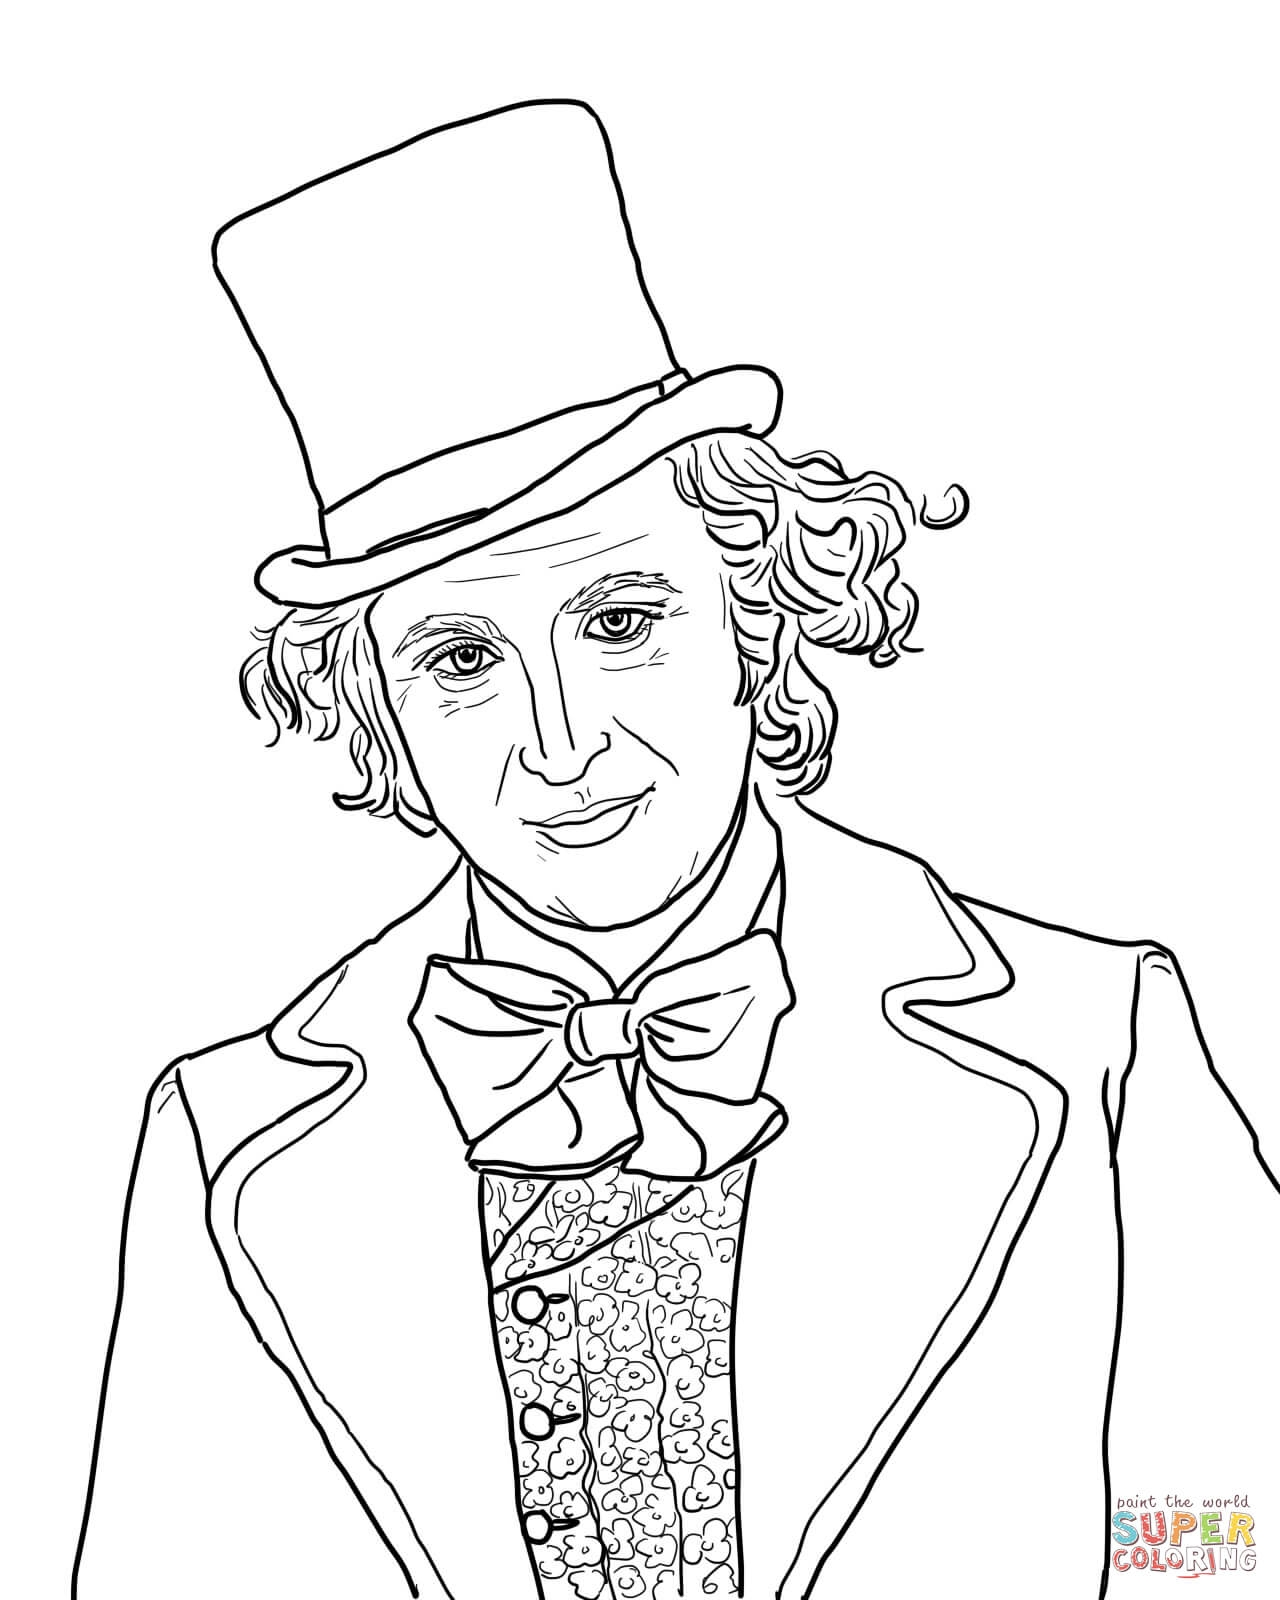 willy wonka coloring pages - willy wonka chocolate bar coloring page sketch templates